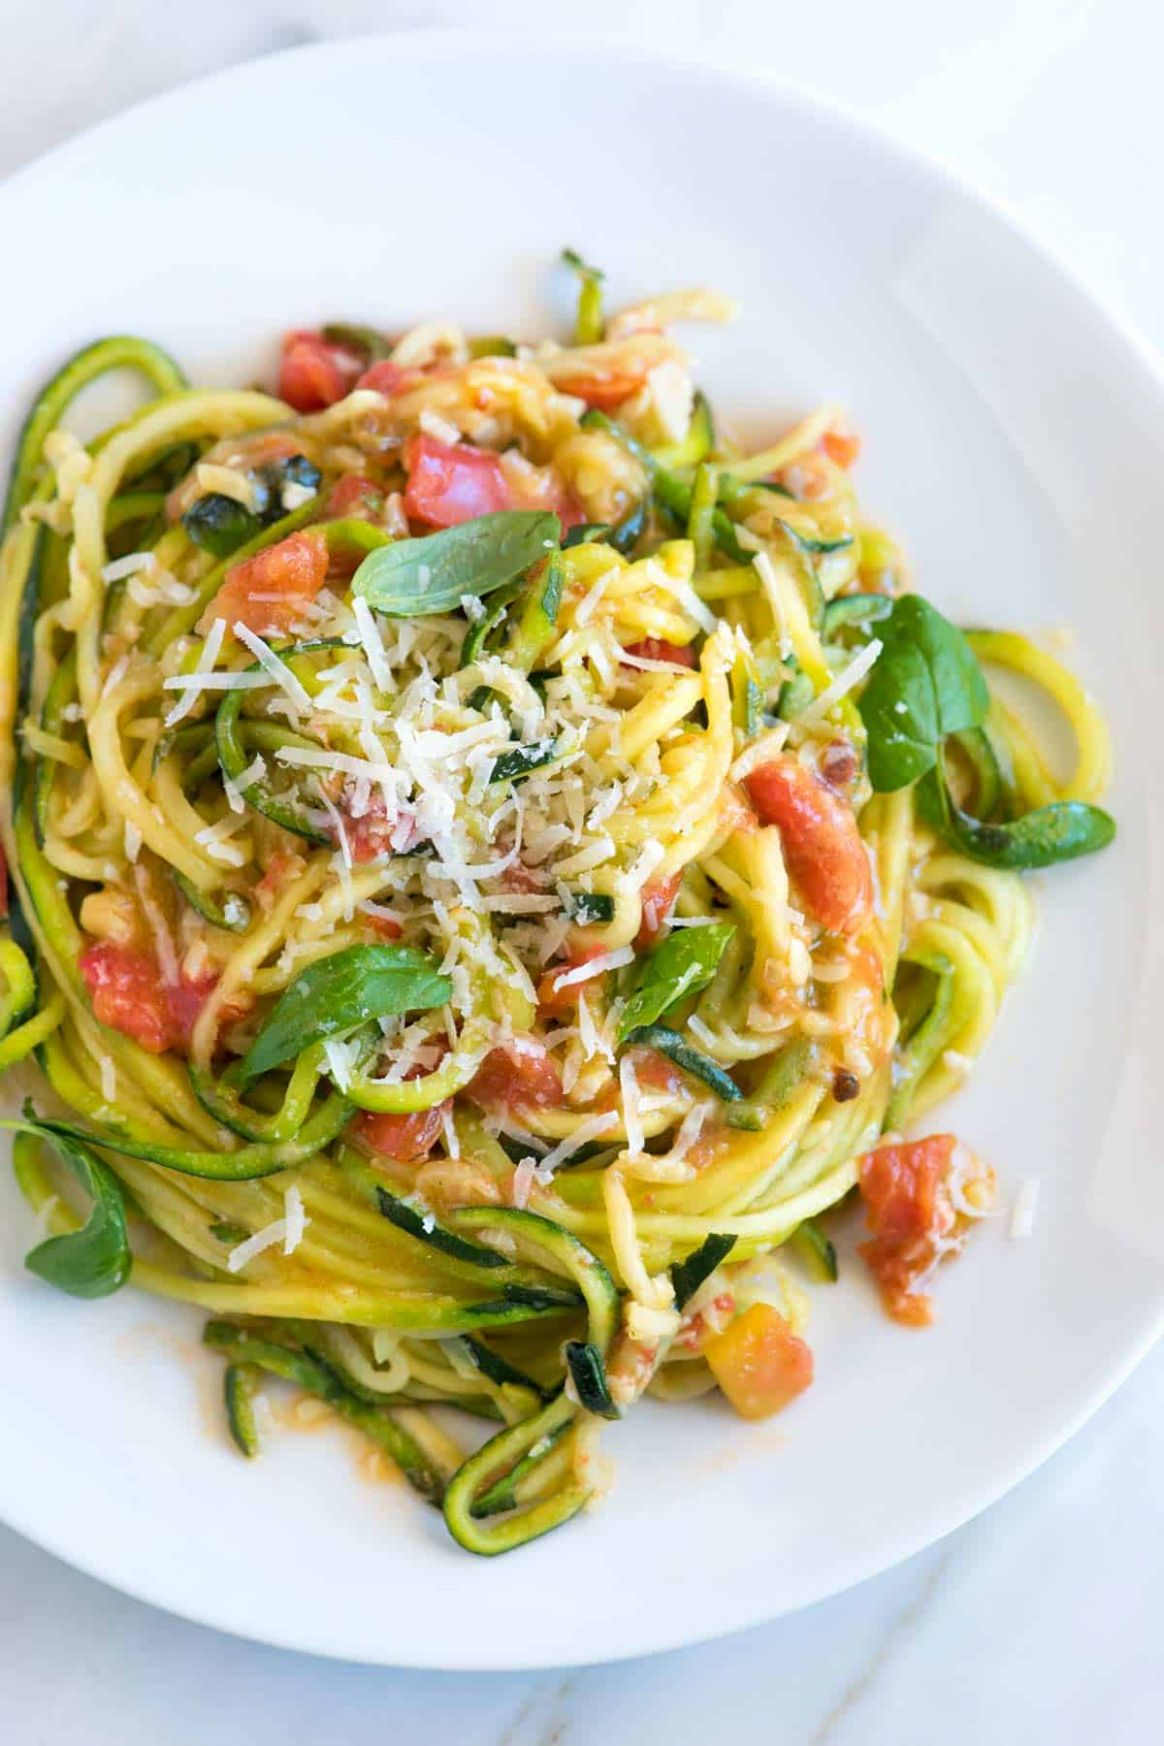 Guilt-Free Garlic Parmesan Zucchini Noodles Pasta - Cooking Recipes Zucchini Pasta